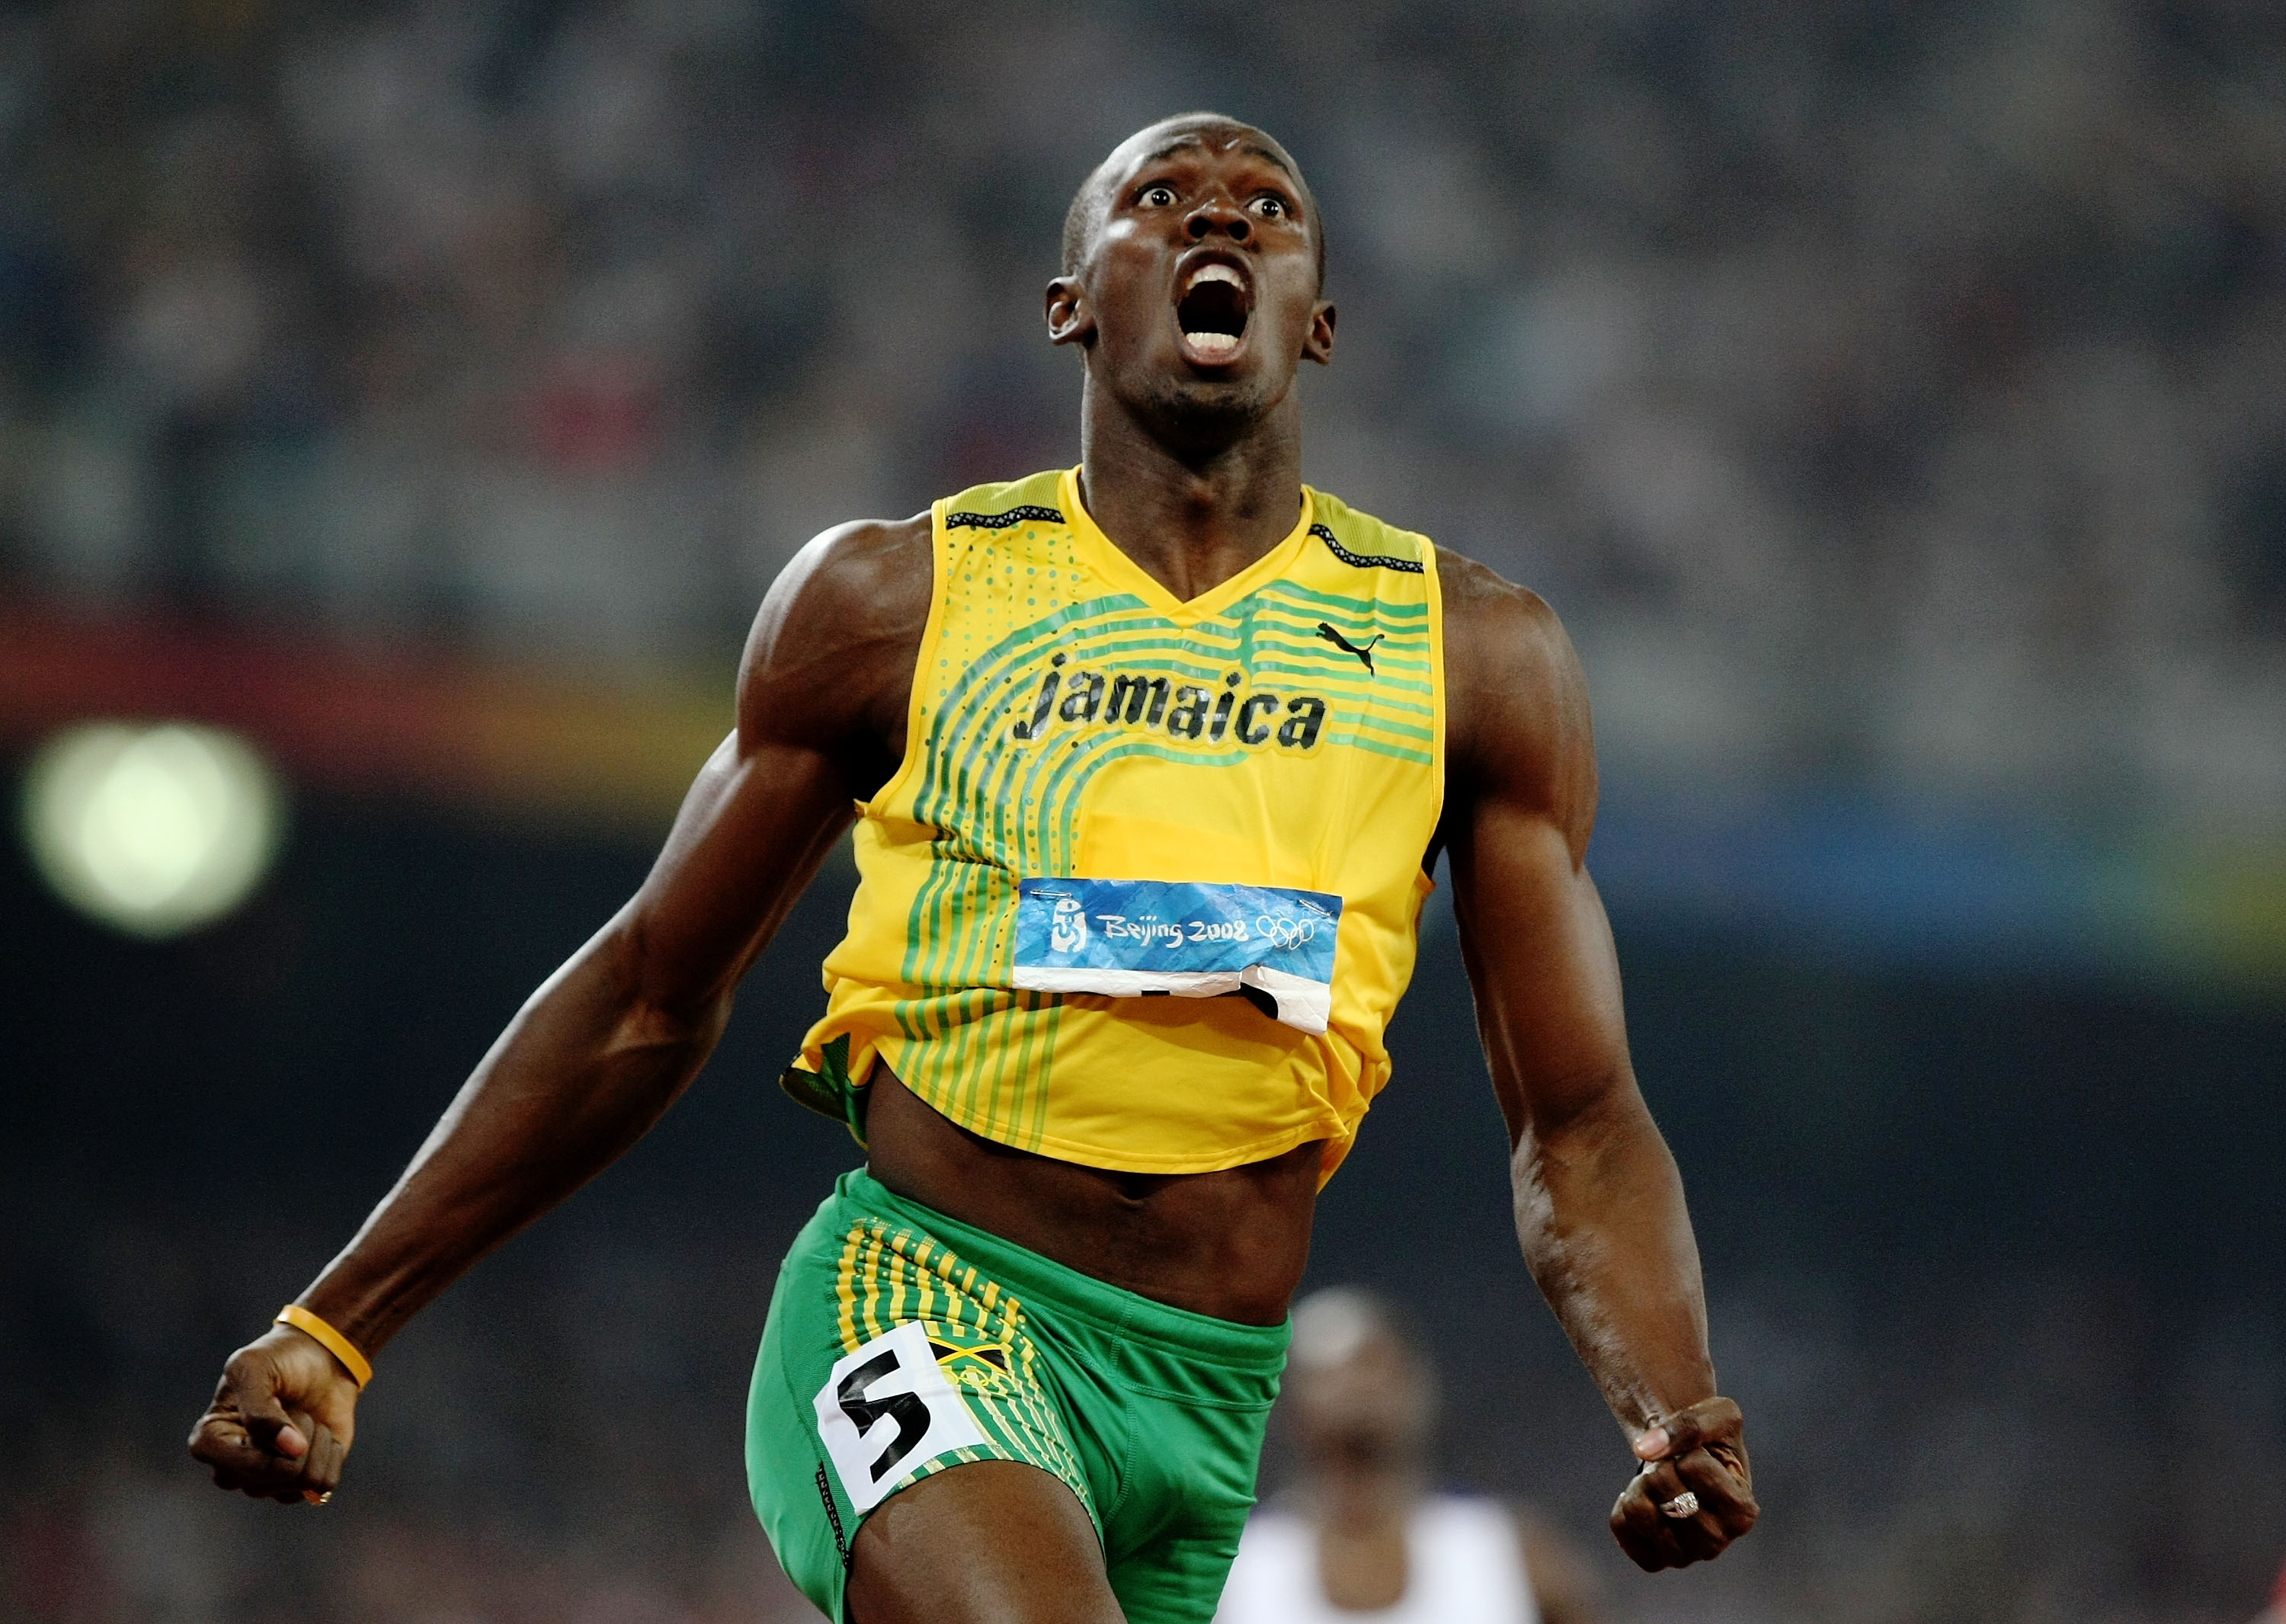 BEIJING - AUGUST 20:  Usain Bolt of Jamaica reacts after breaking the world record with a time of 19.30 to win the gold medal in the Men's 200m Final at the National Stadium during Day 12 of the Beijing 2008 Olympic Games on August 20, 2008 in Beijing, China.  (Photo by Jed Jacobsohn/Getty Images)